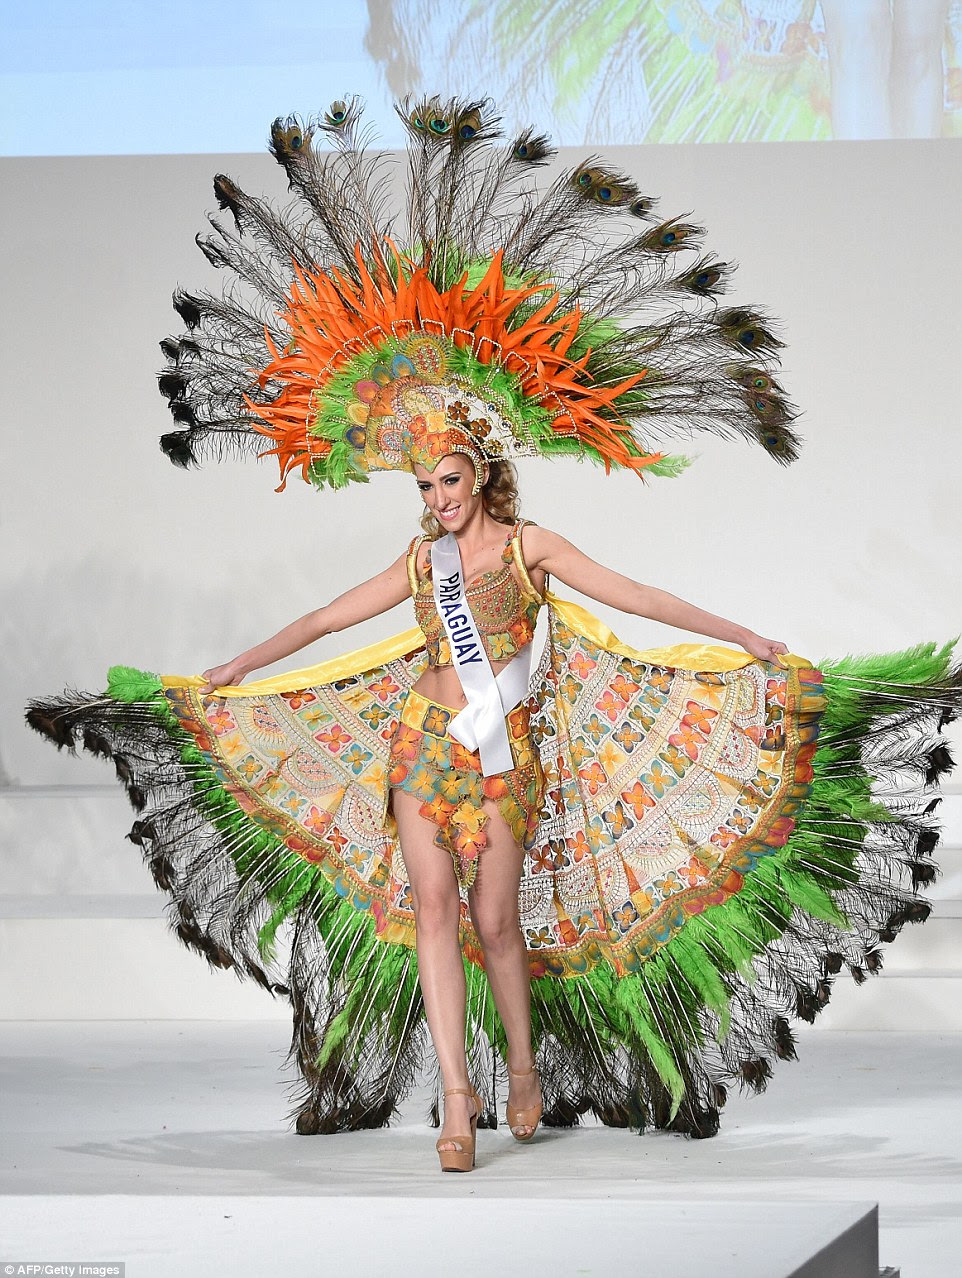 Miss Paraguay Monica Mariani Pascualoto displays her national costume during the Miss International beauty pageant in Tokyo on November 5 2015. Representatives from 70 countries and regions took part in the beauty pageant